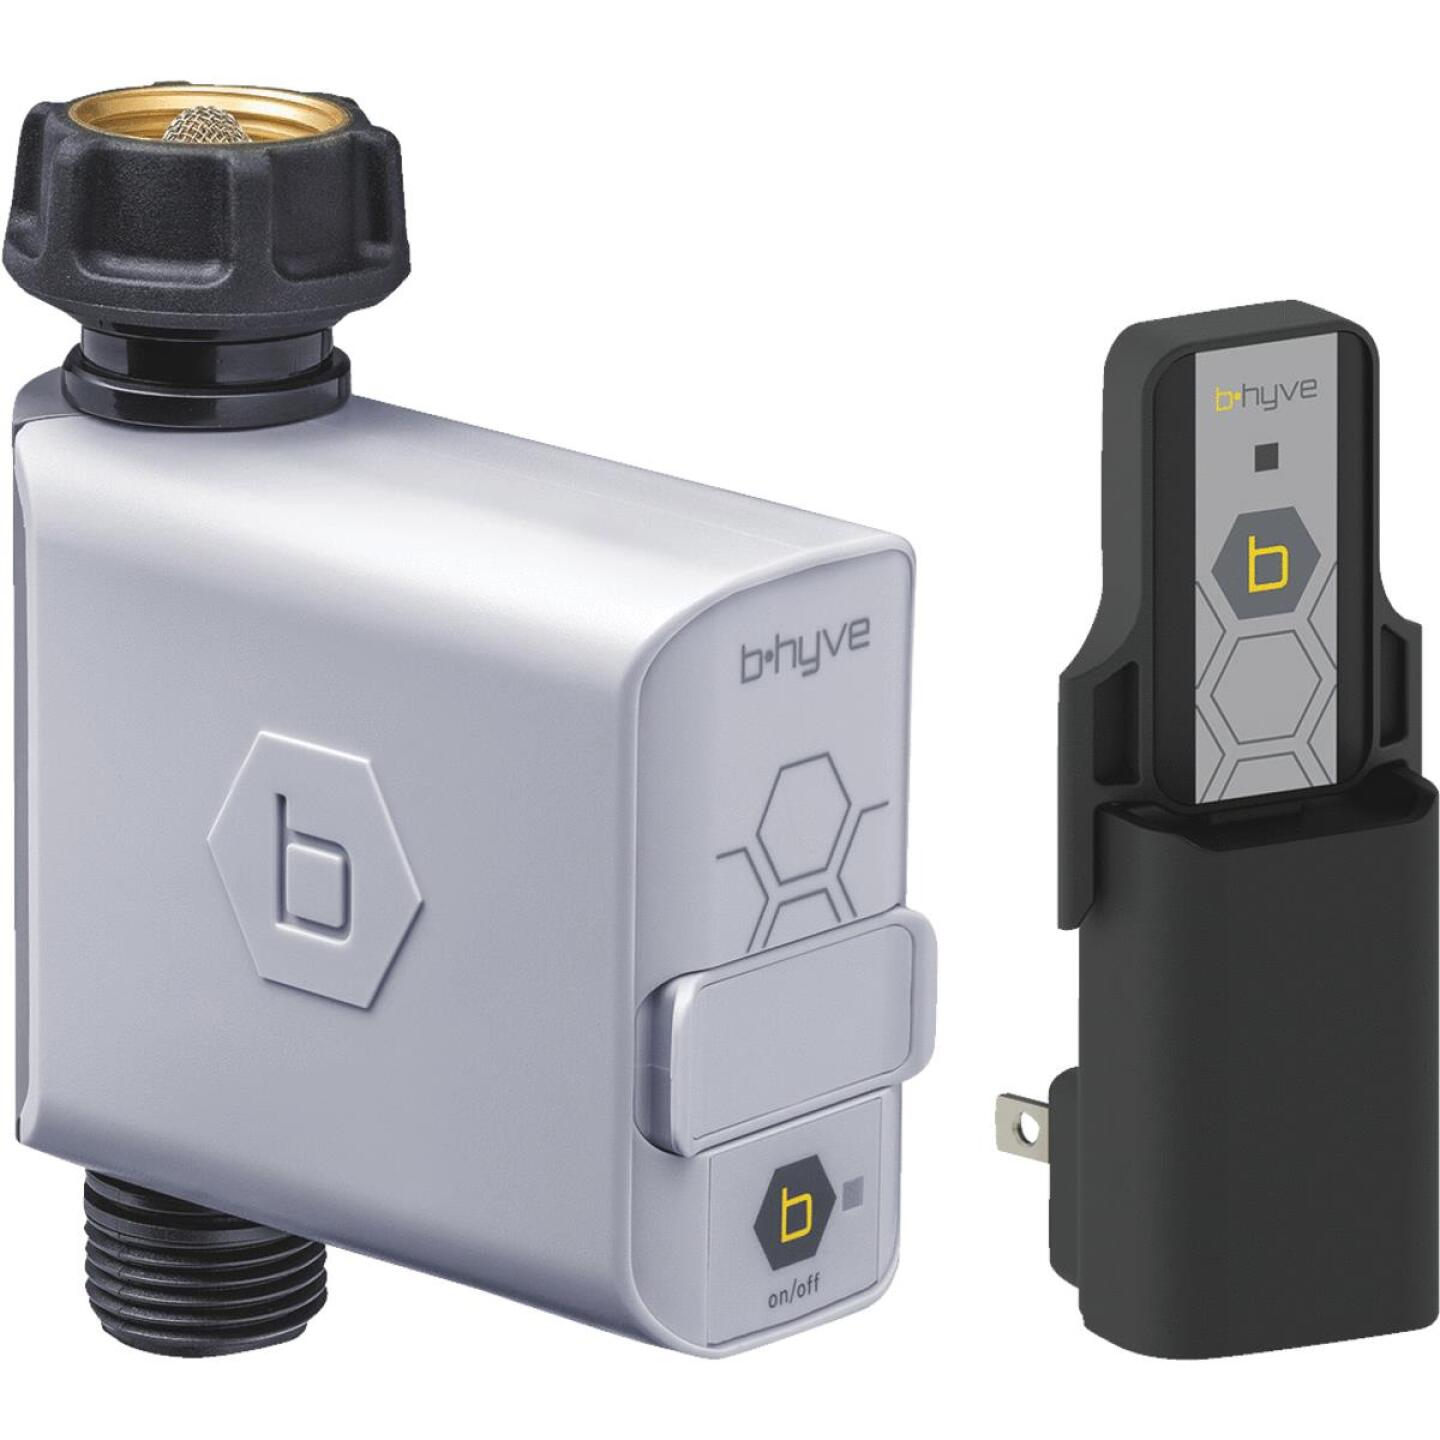 Orbit B-Hyve Electronic 1-Zone Water Timer Image 1